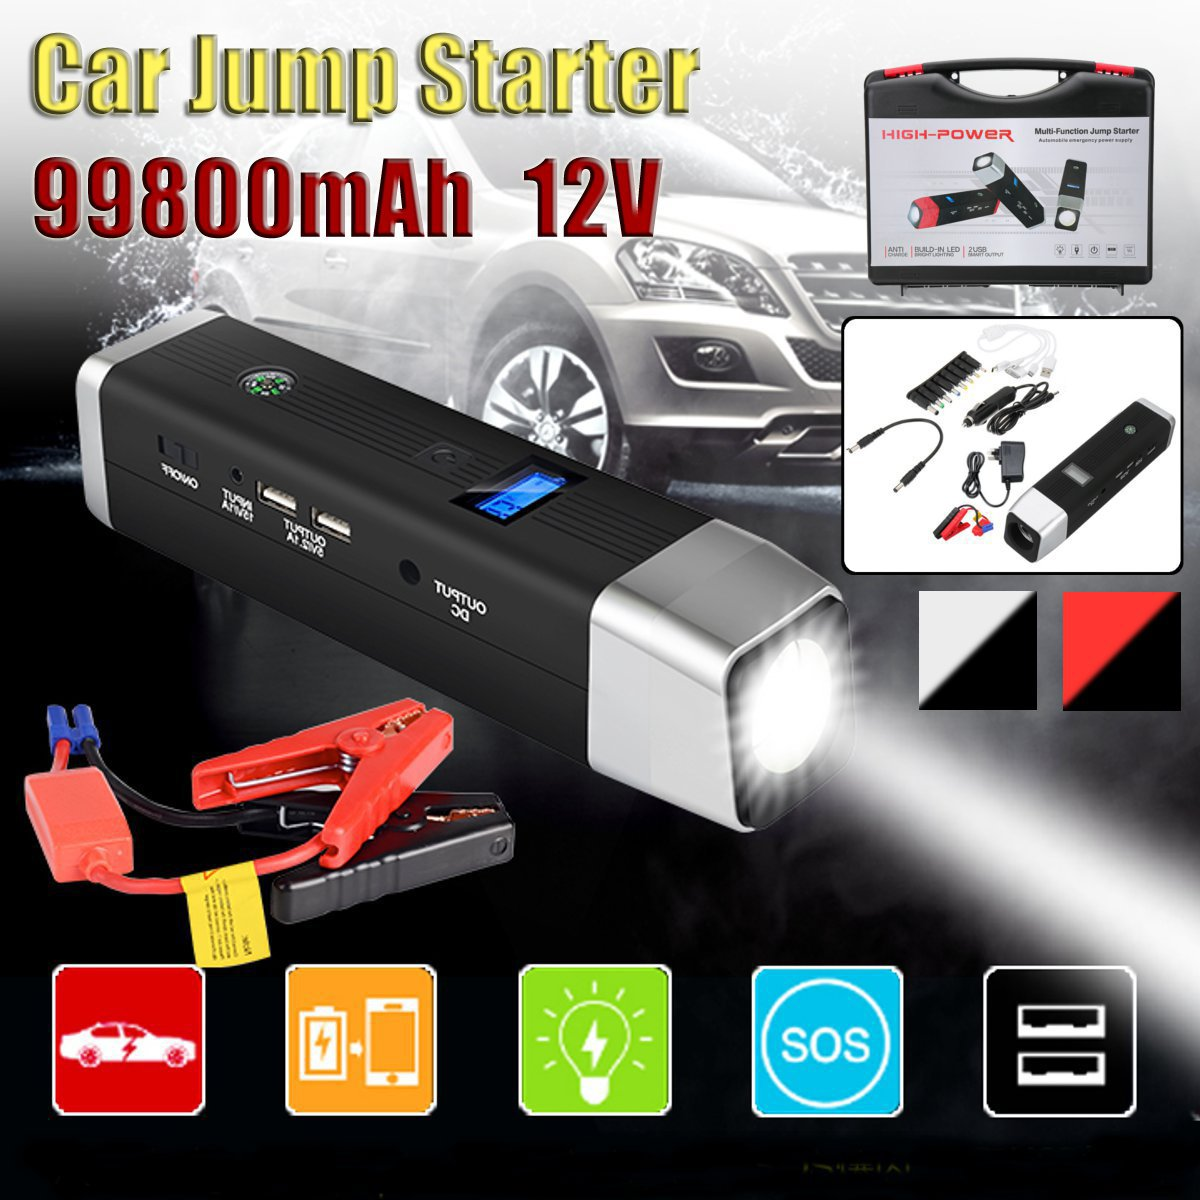 Multifunction Jump Starter 99800mAh 12V 2USB 500A Portable Car Battery Booster Charger Booster Power Bank Starting DeviceMultifunction Jump Starter 99800mAh 12V 2USB 500A Portable Car Battery Booster Charger Booster Power Bank Starting Device